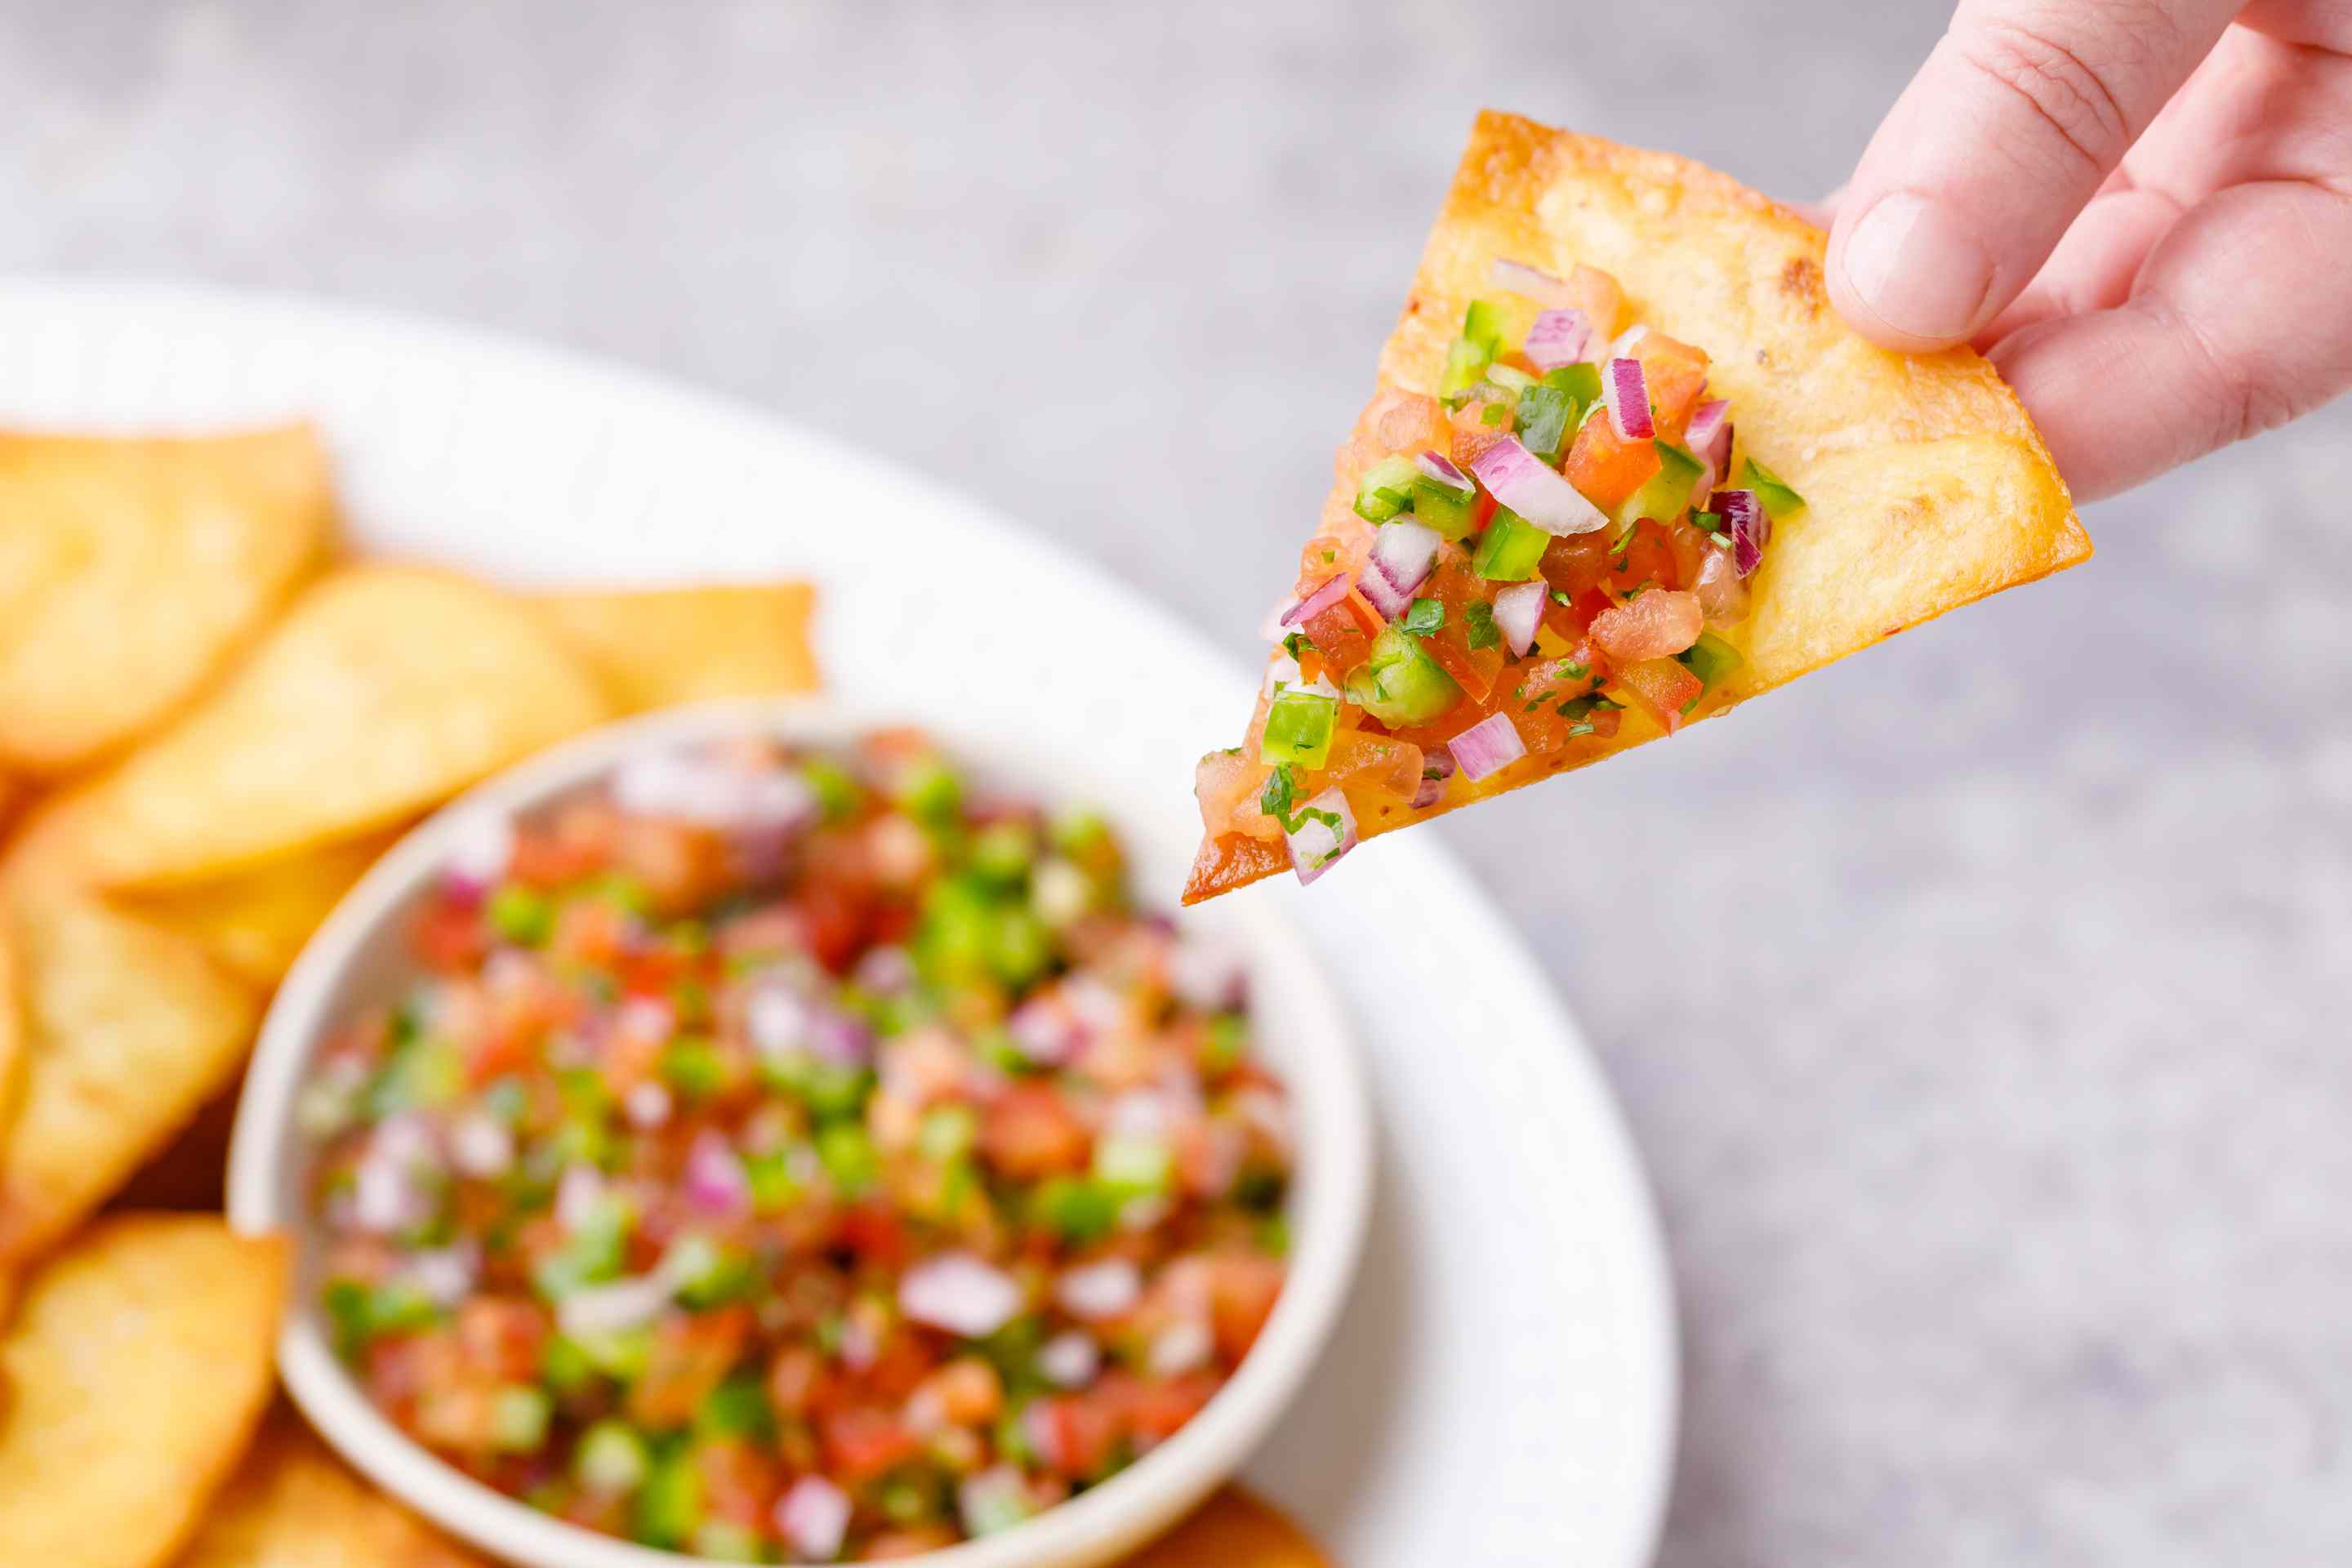 Person dipping the tortilla chip into salsa.